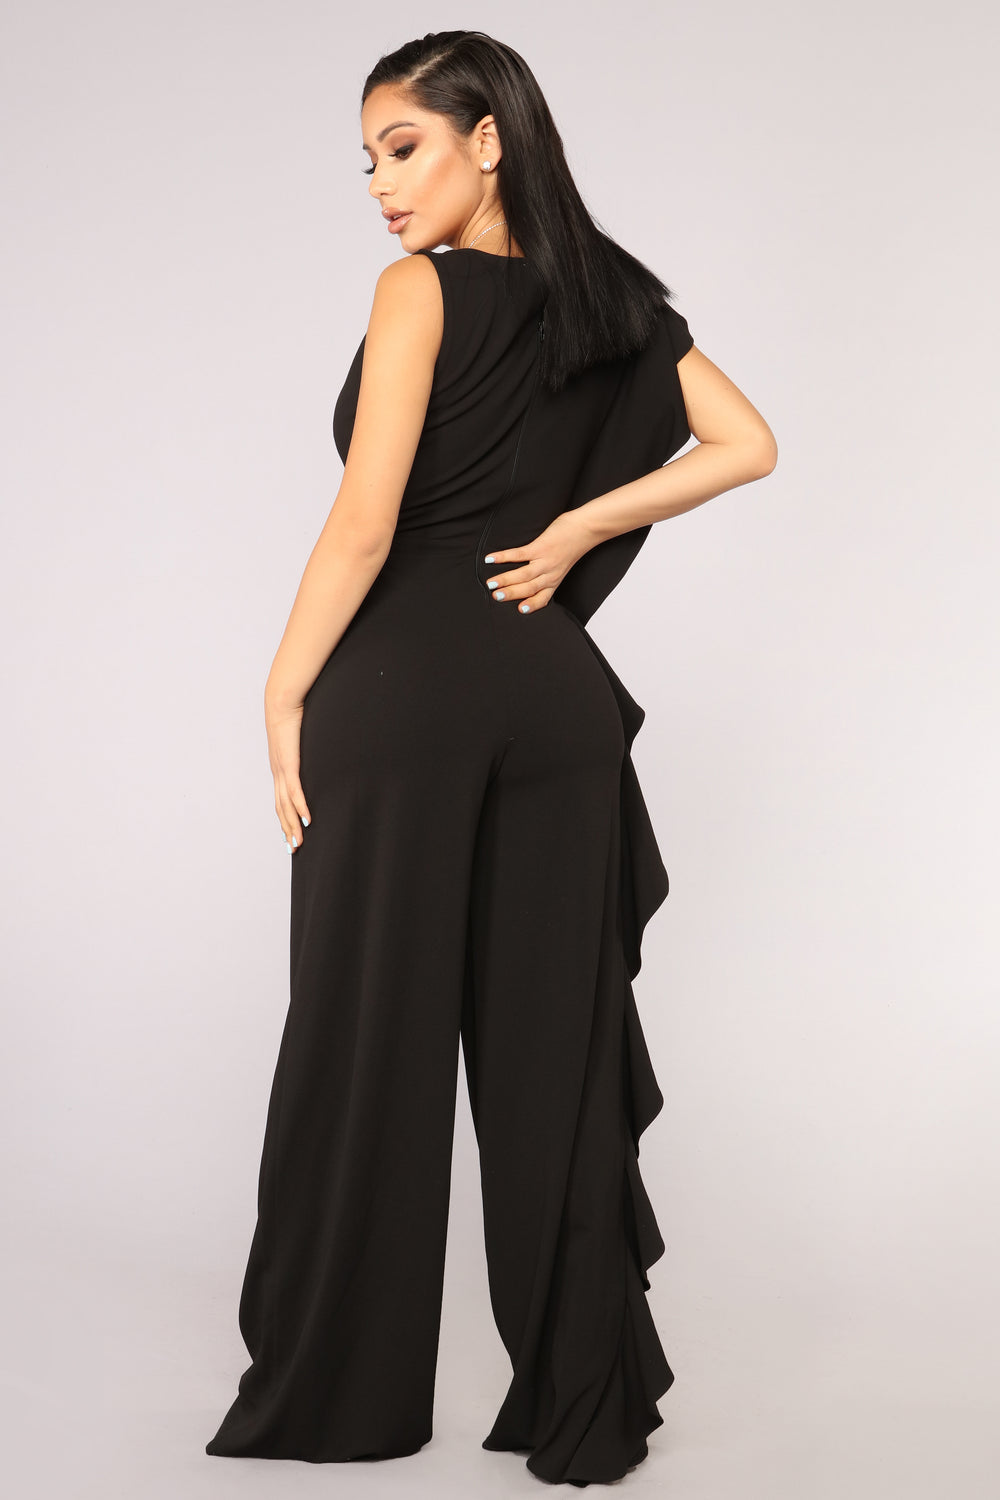 First Class Desires Ruffle Jumpsuit - Black